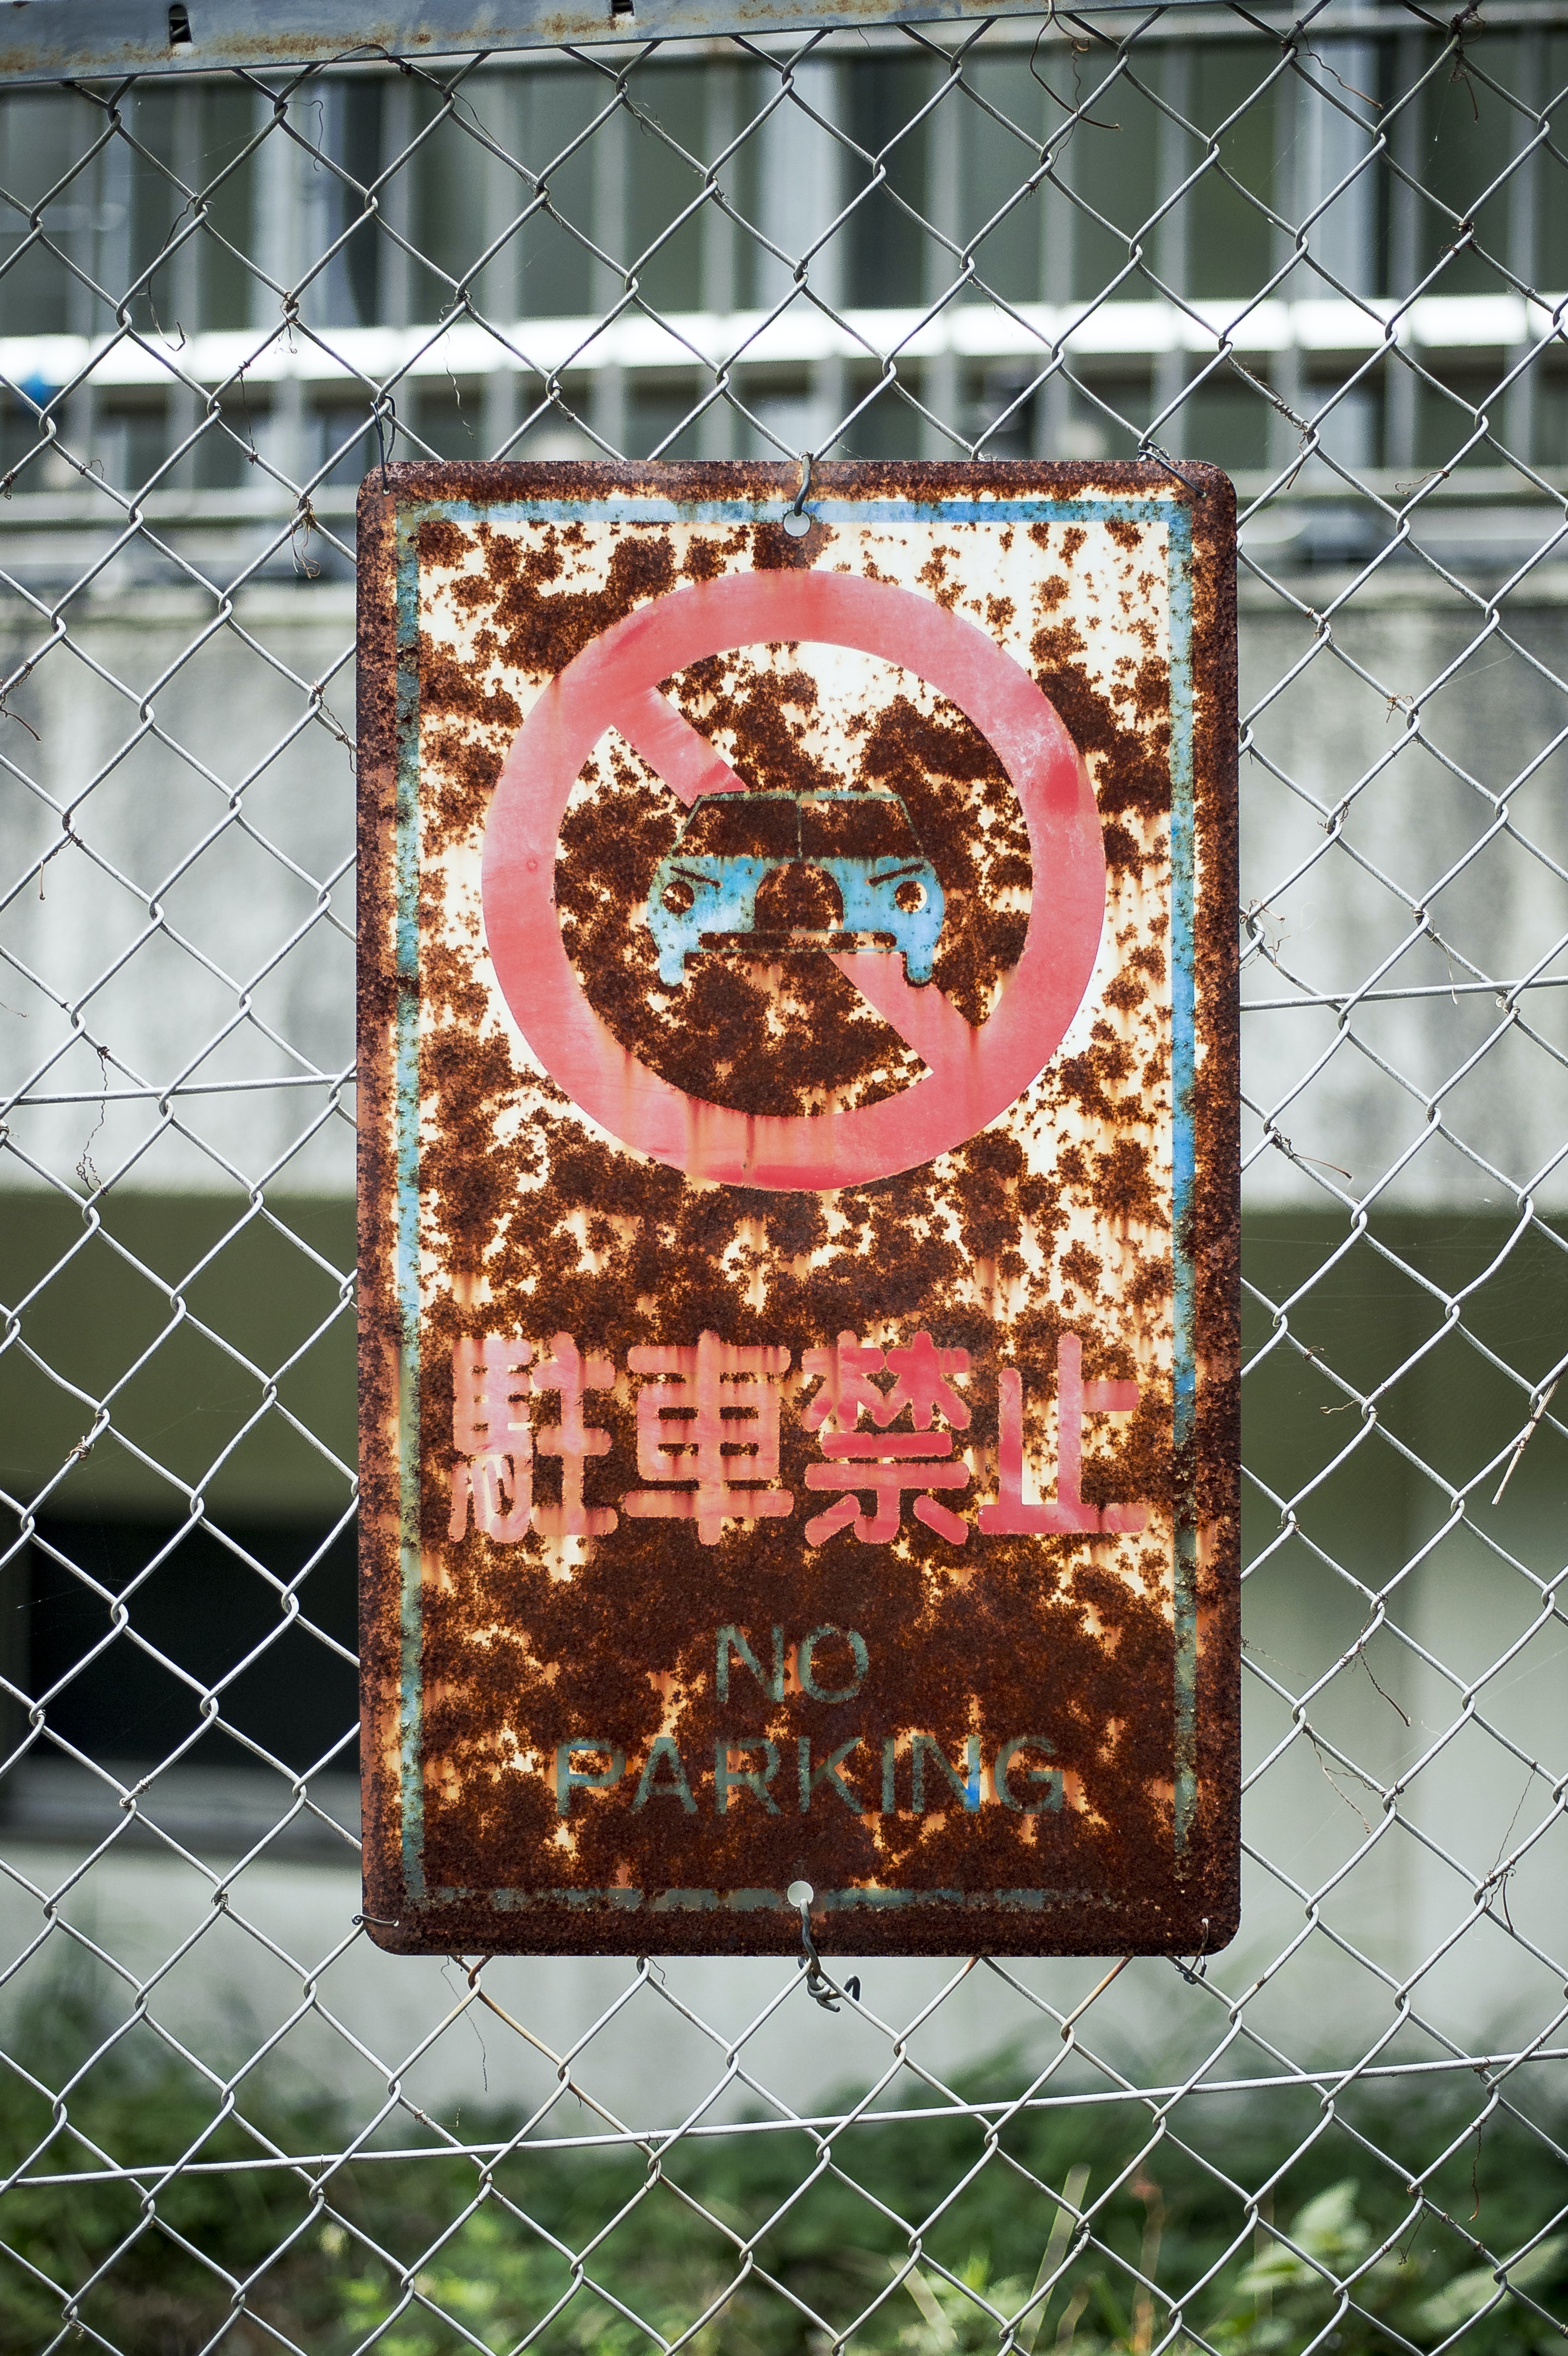 blue and white No Parking signage hanging on gray cyclone fence